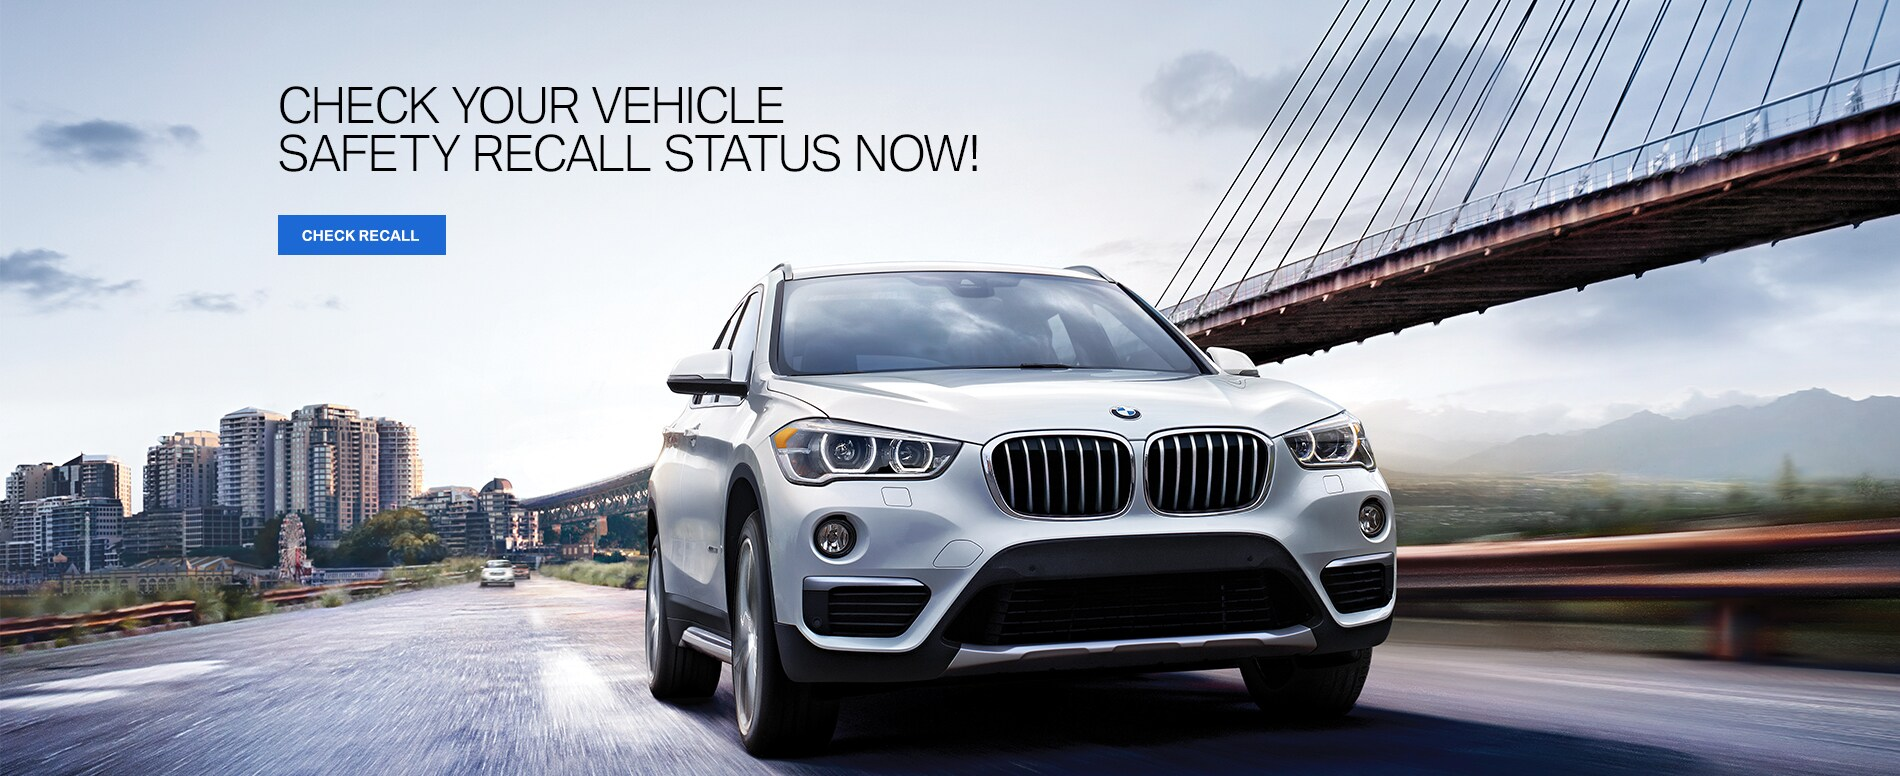 Ft Myersnaples Acura Dealers New Used Cars In Fort Myers >> Bmw Of Fort Myers New Bmw Dealer In Fort Myers Fl